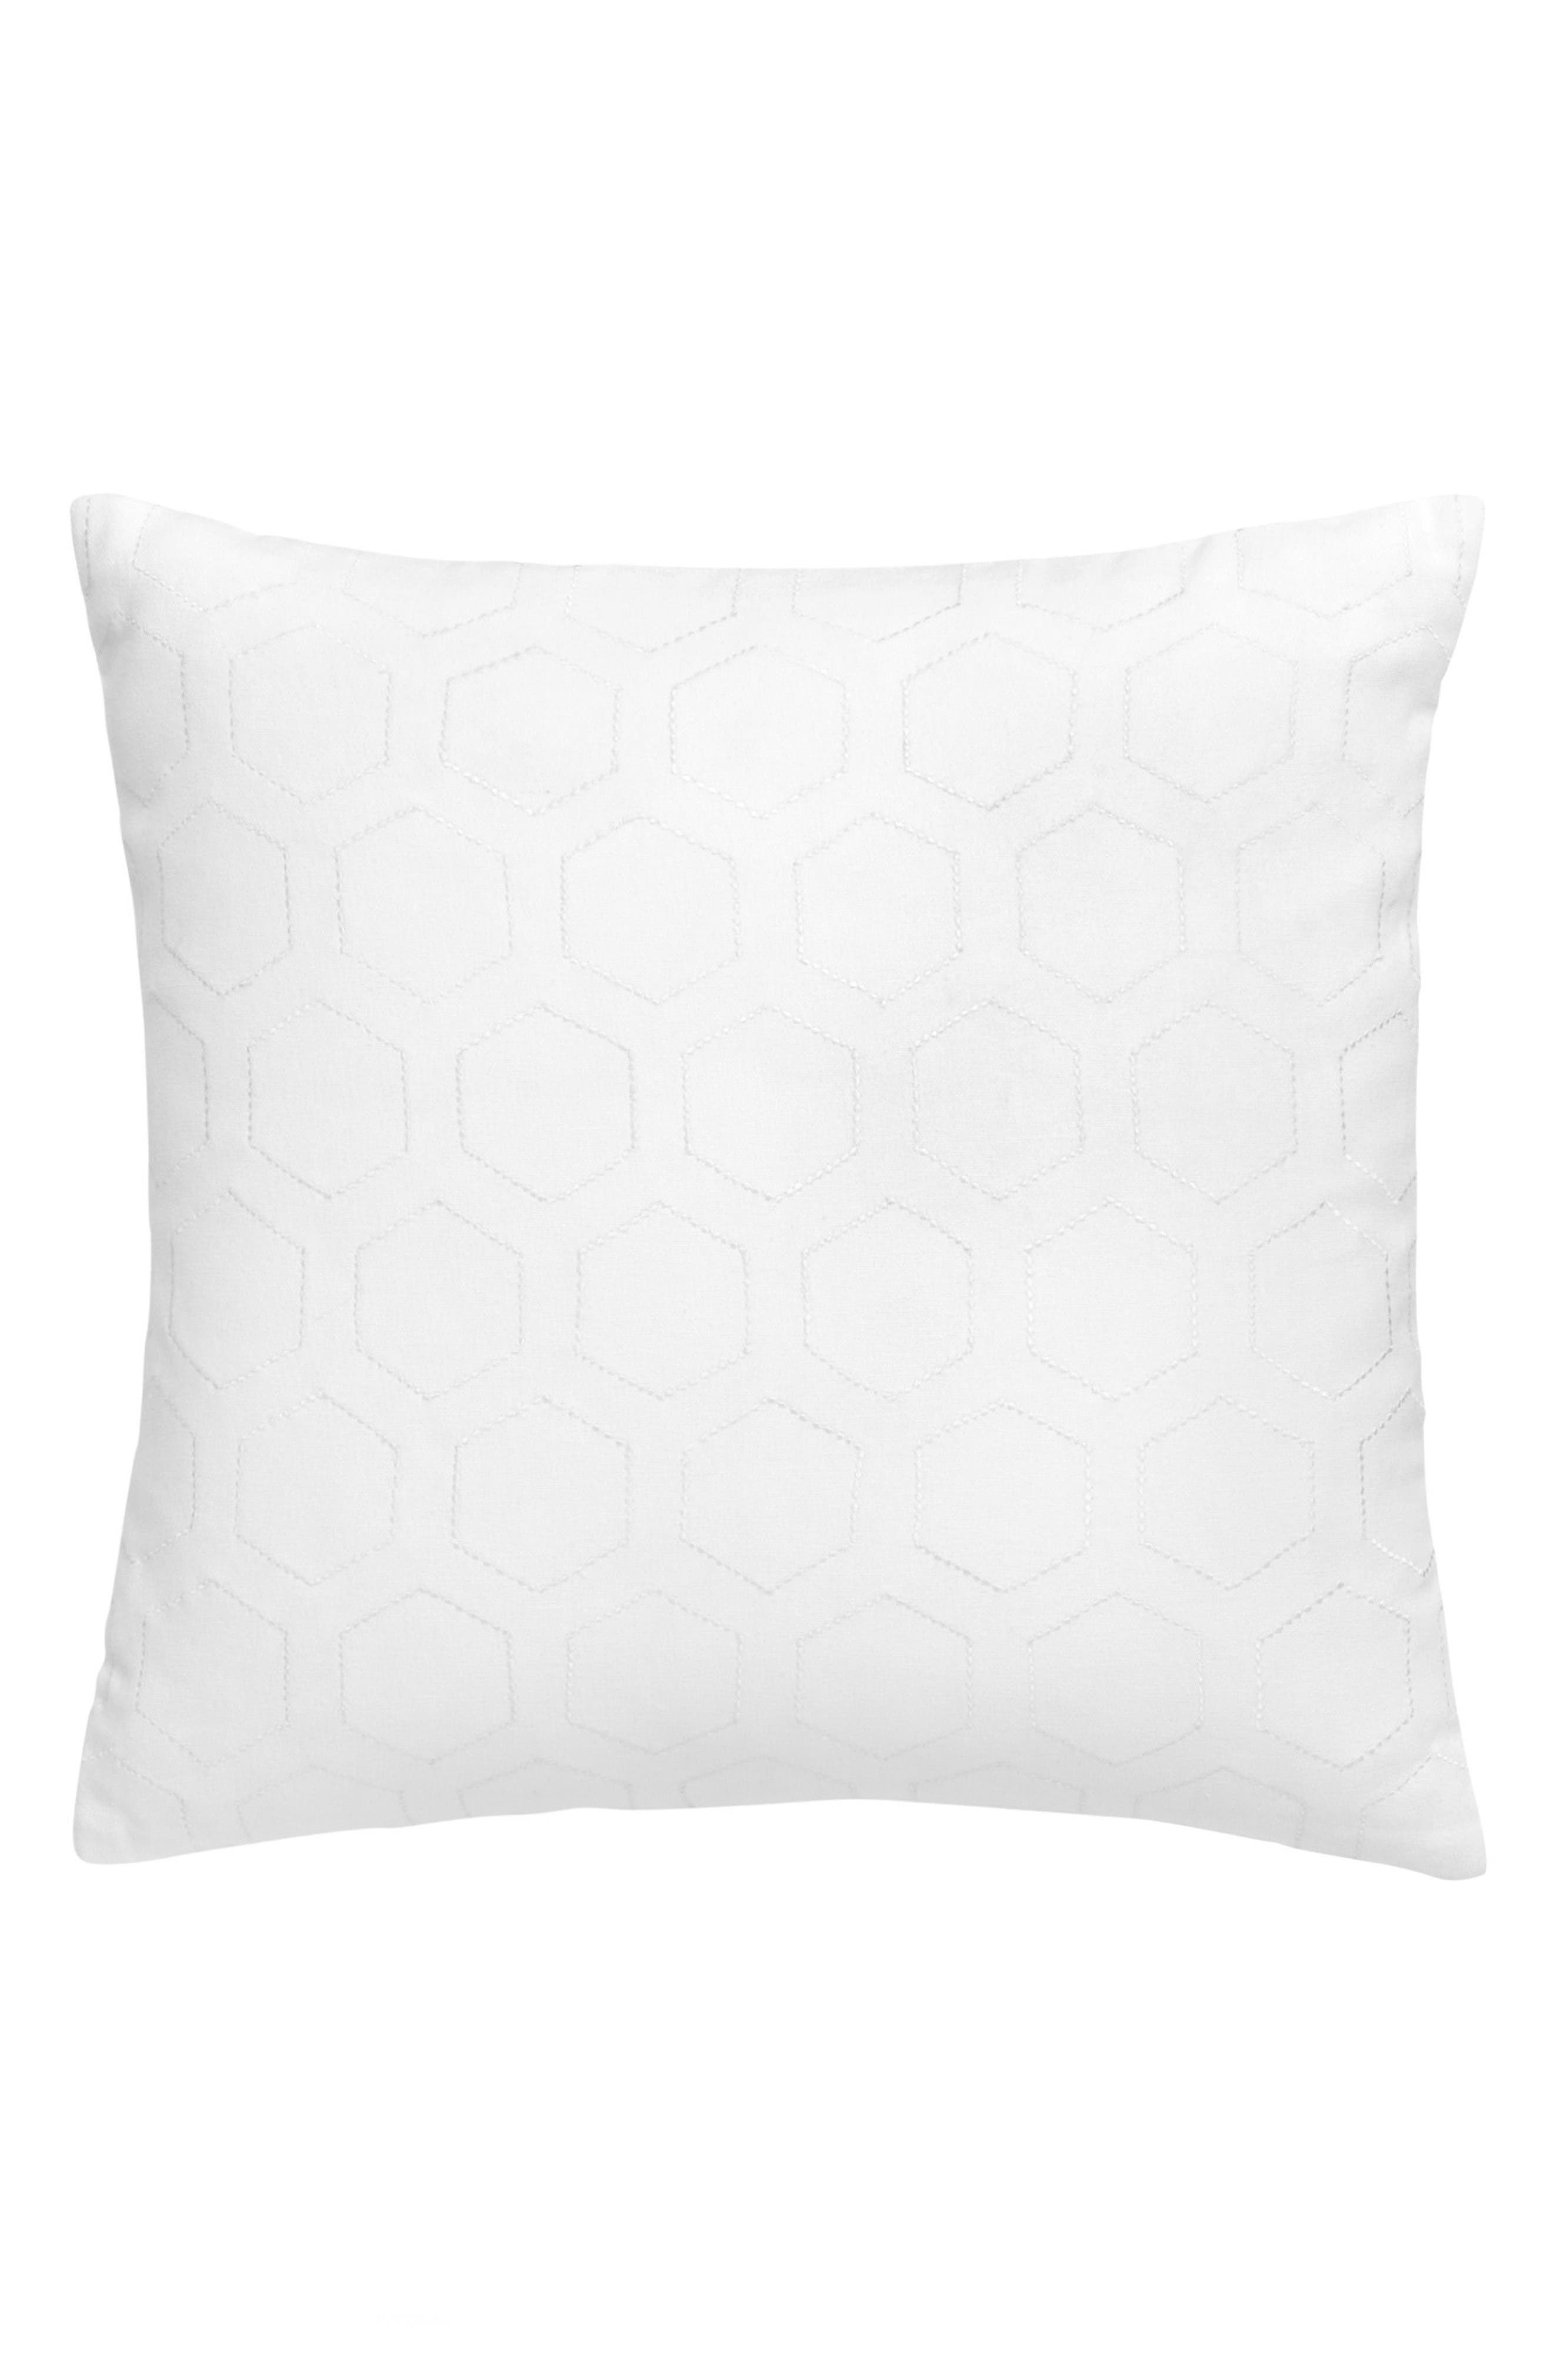 Alternate Image 1 Selected - Jill Rosenwald Blackpoint Hex Accent Pillow